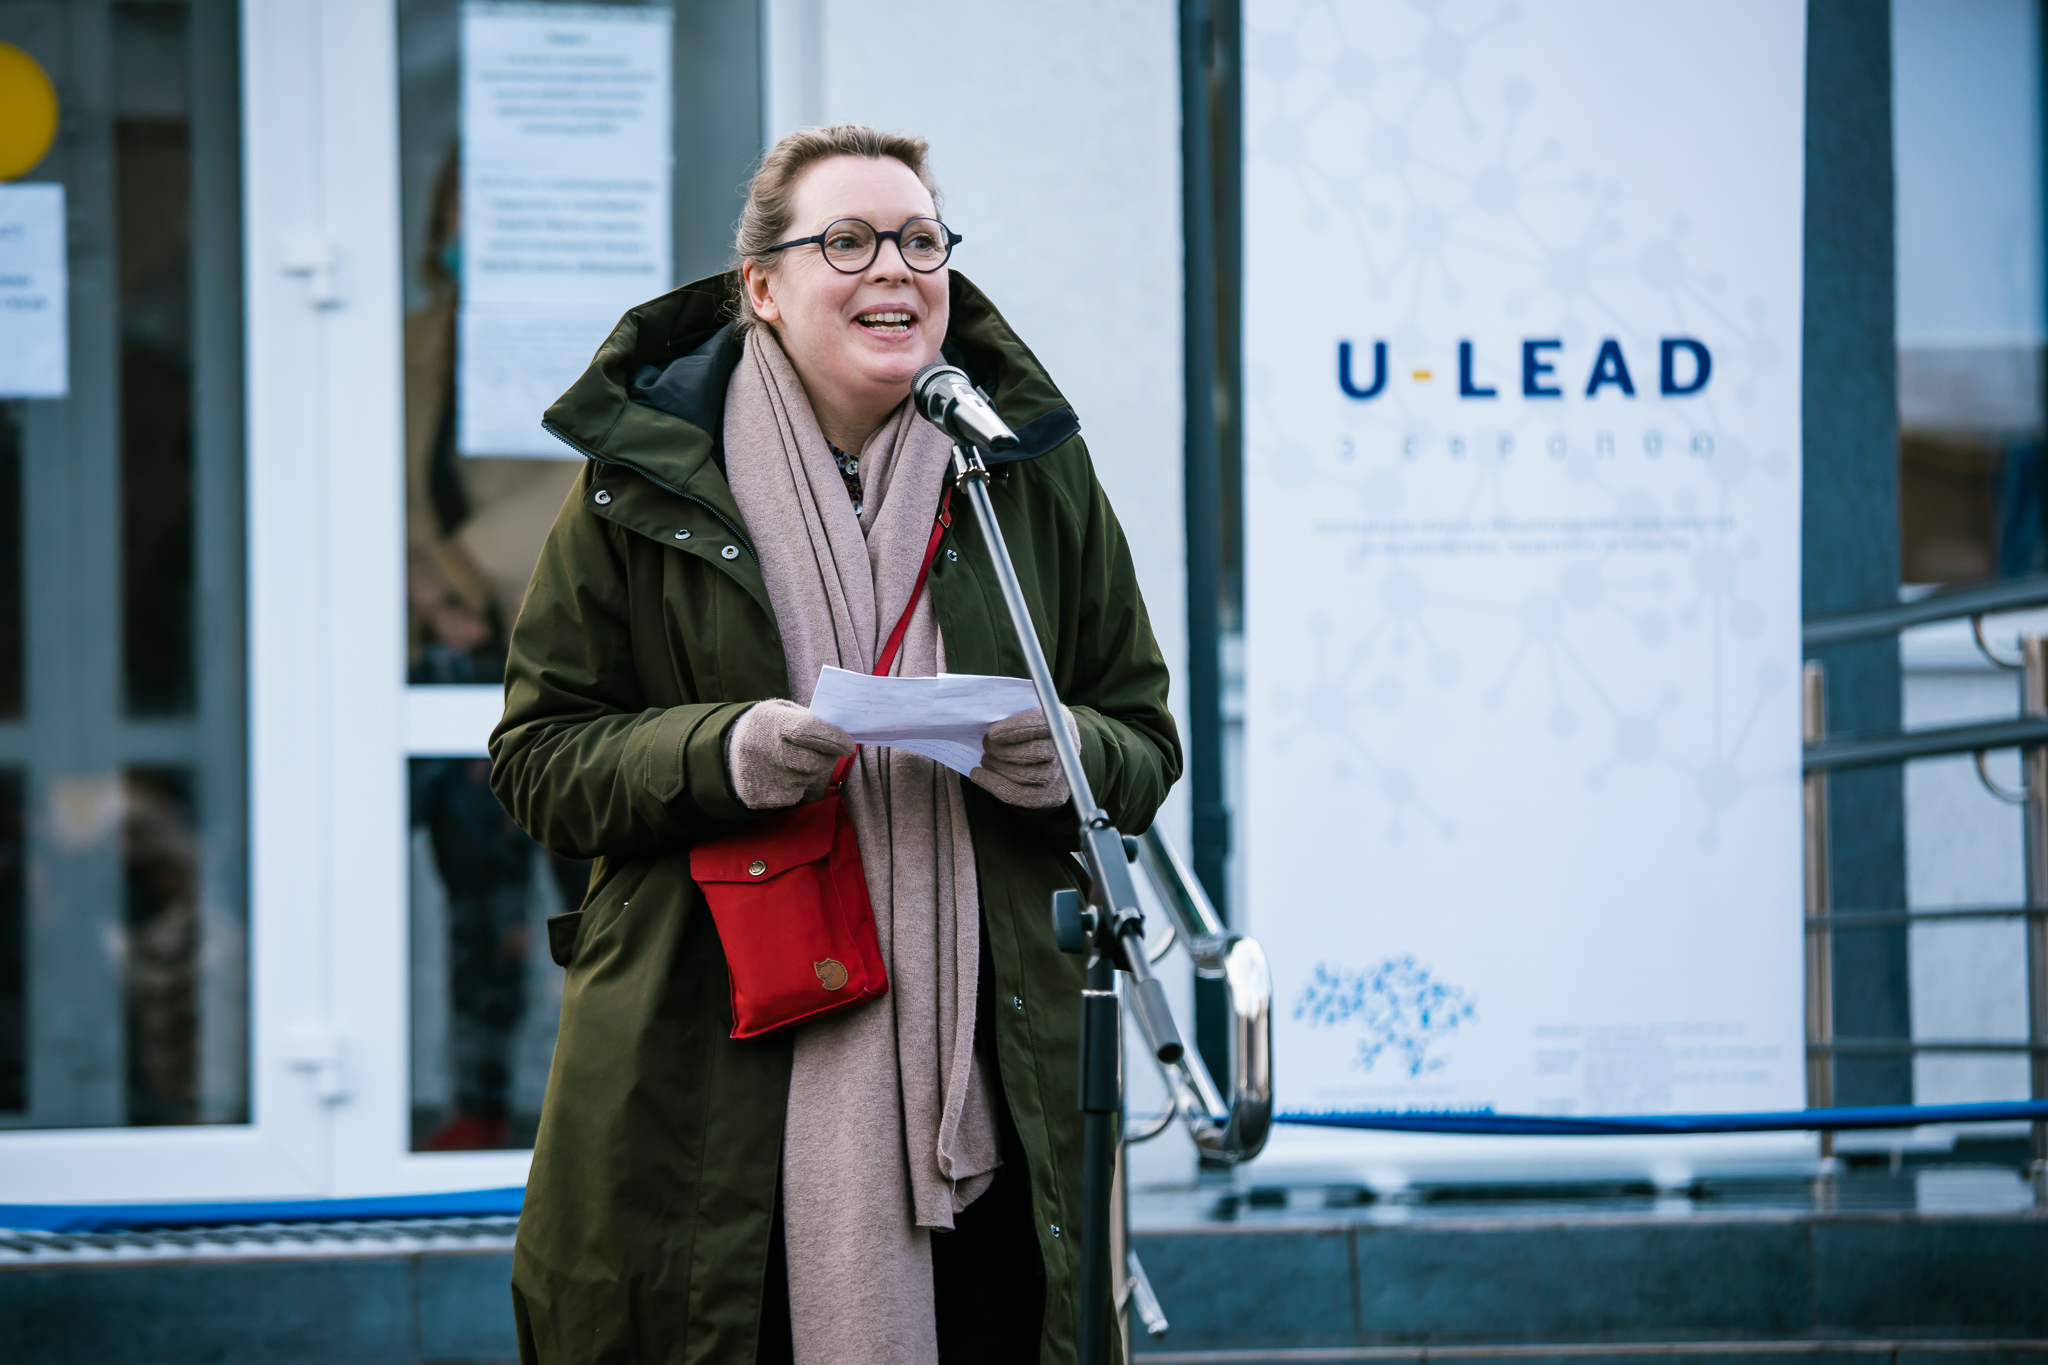 U-LEAD with Europe programme opened 150th Administrative Service Centre in hromada